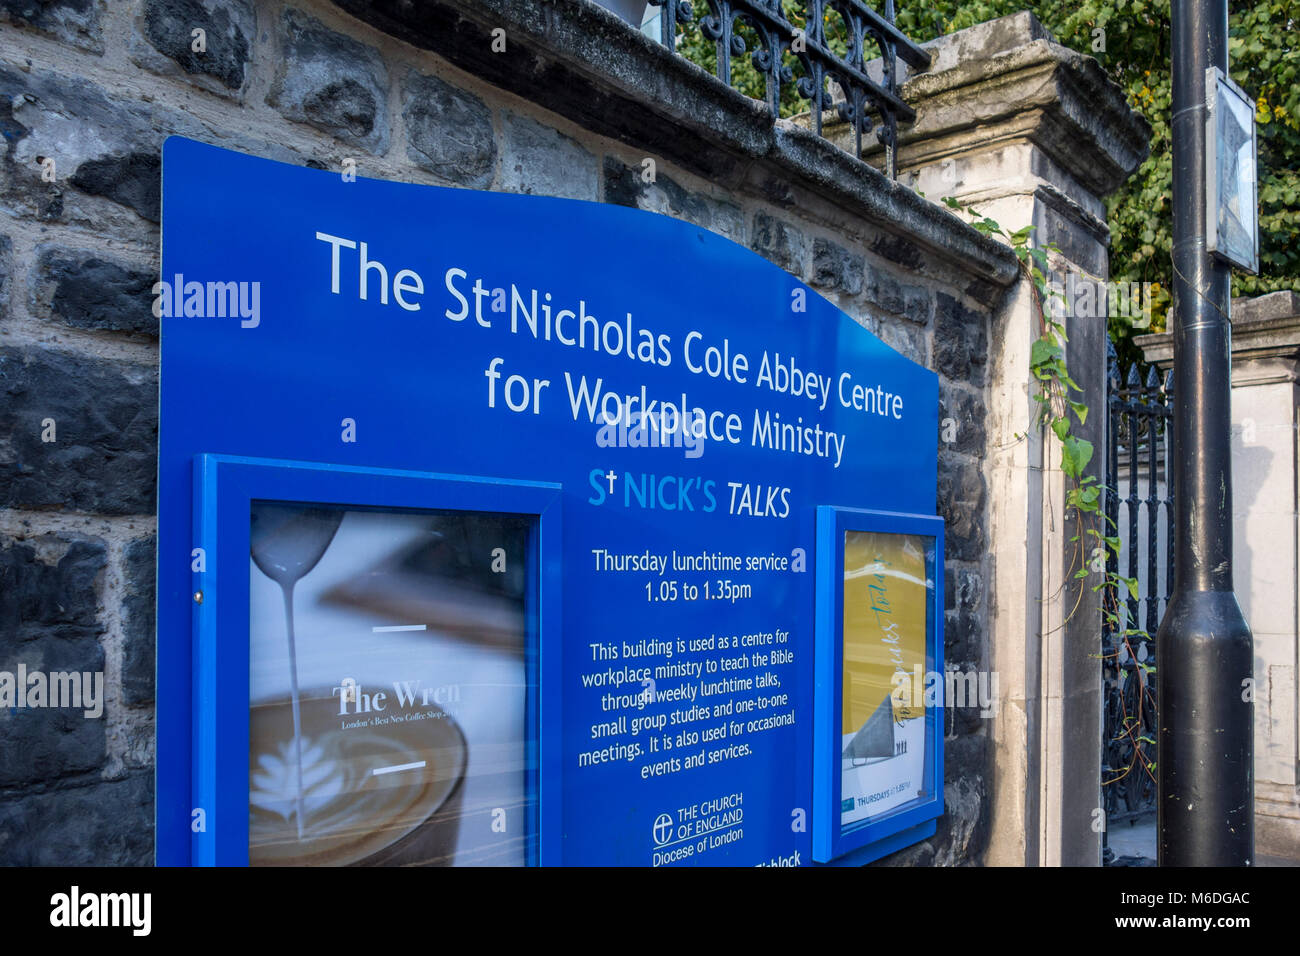 St Nicholas Cole Abbey Centre for Workplace Ministry sign, City of London, UK - Stock Image